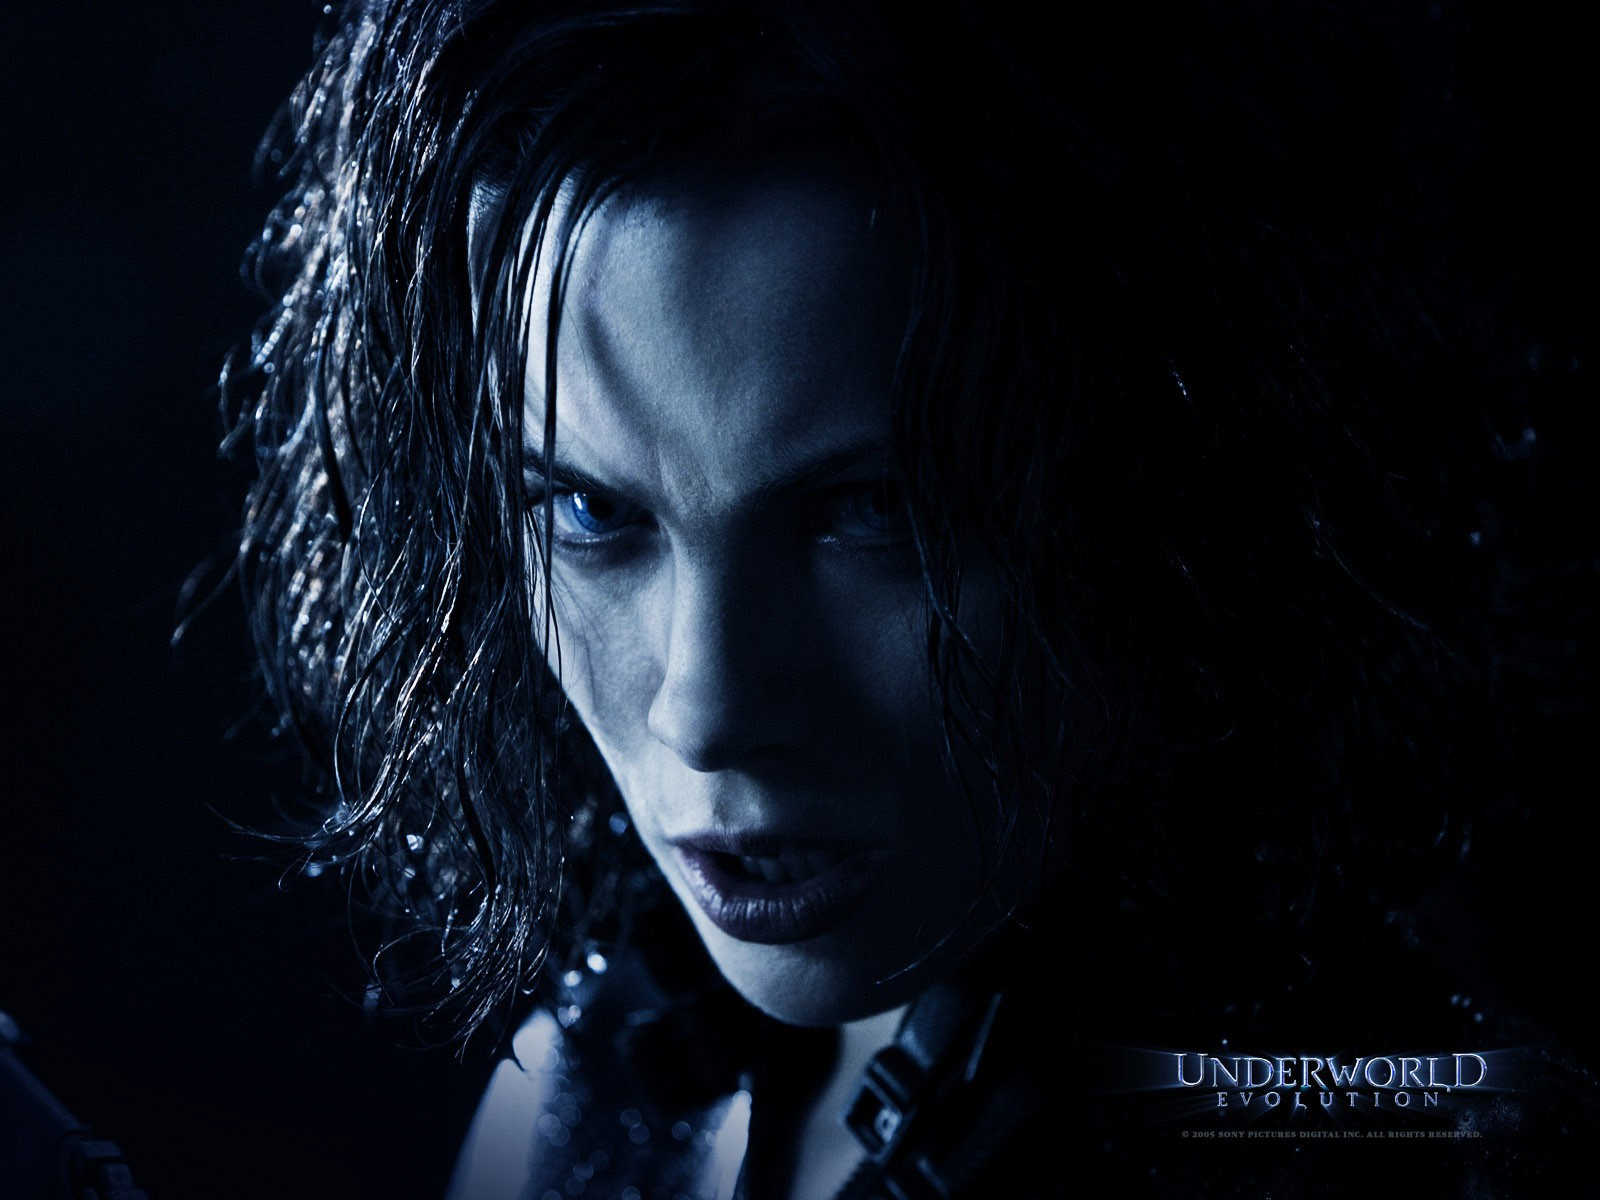 Un wallpaper di Kate Beckinsale che interpreta Selene in 'Underworld: Evolution'